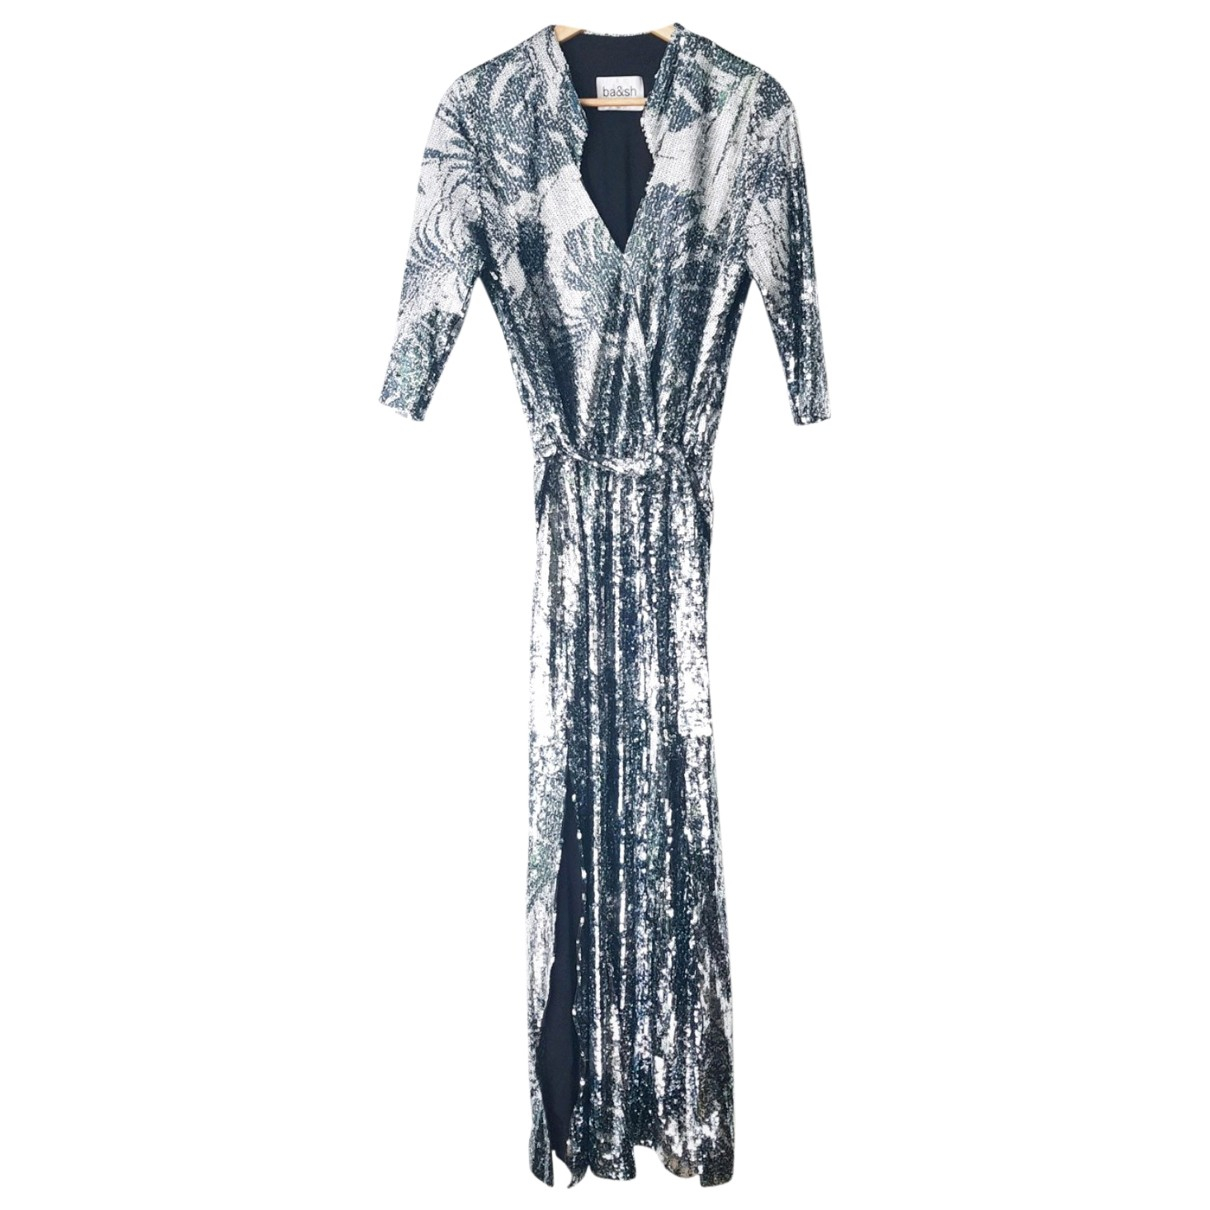 Ba&sh Spring Summer 2020 Silver Glitter dress for Women 36 FR